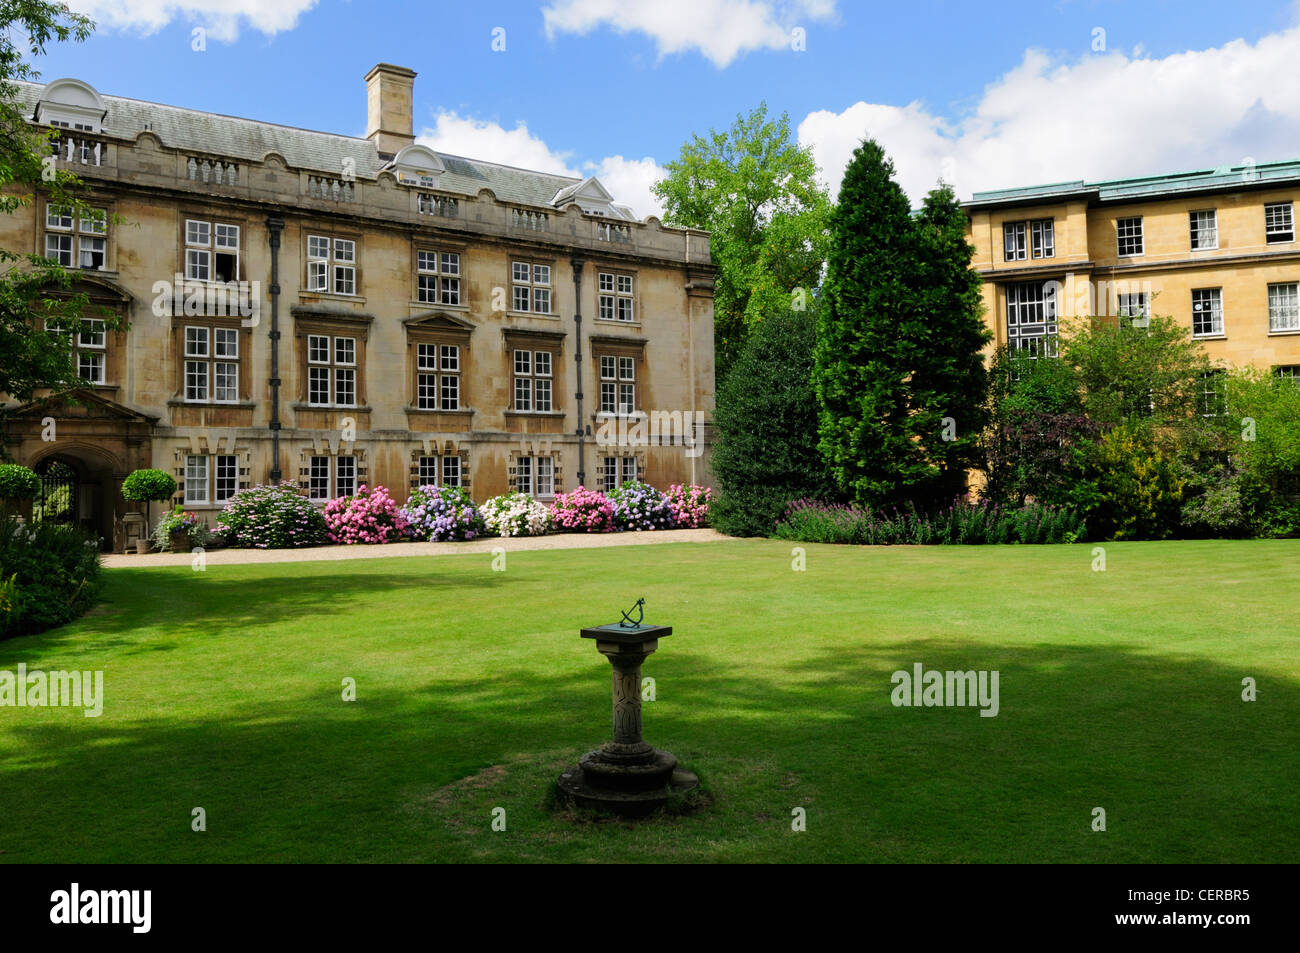 The Fellows Garden at Christ's College, a constituent college of the University of Cambridge. - Stock Image